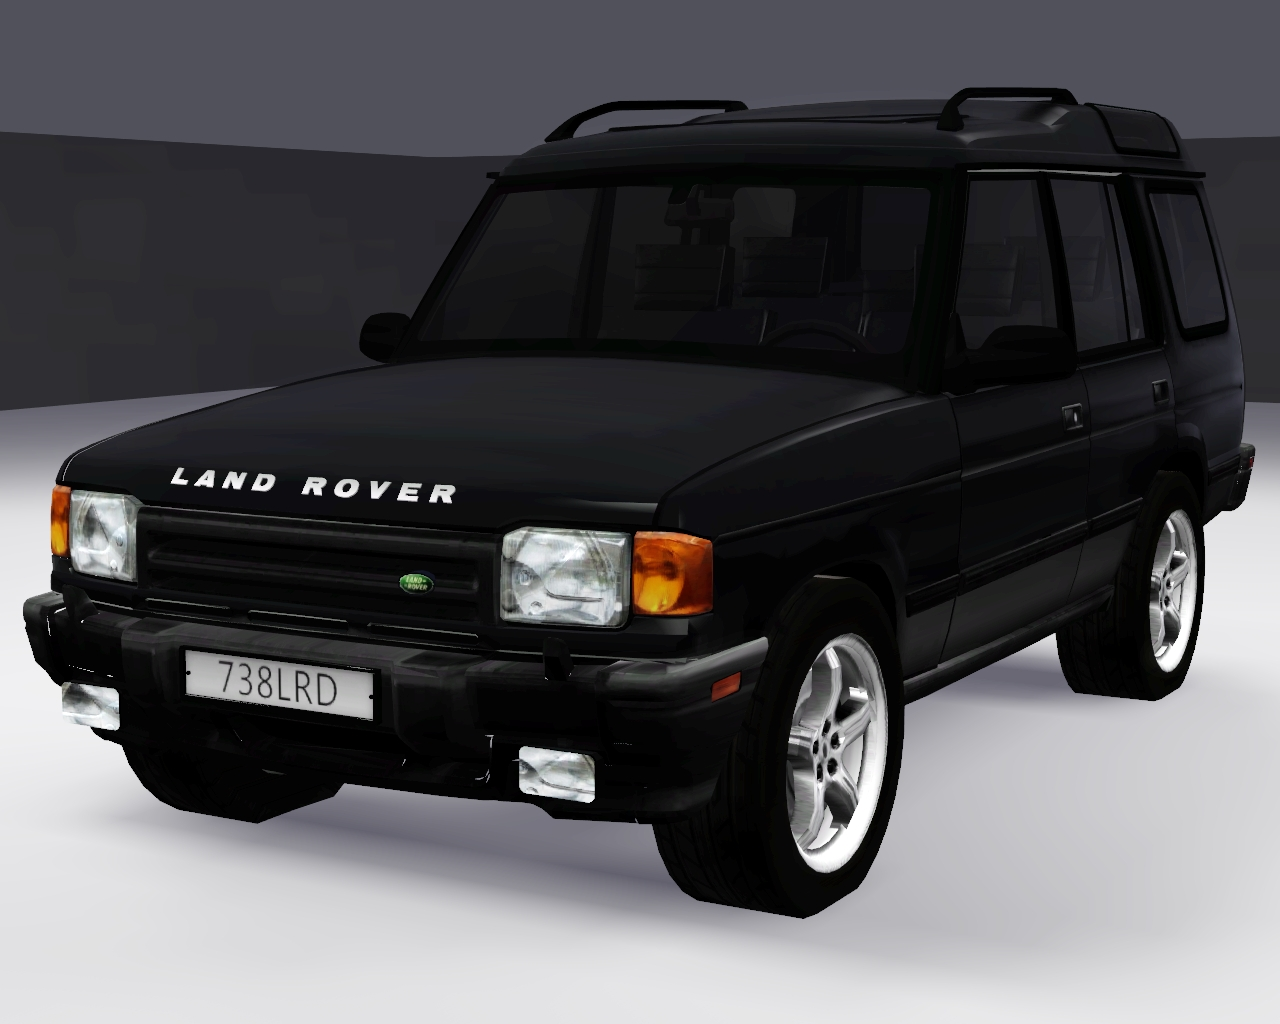 1997 Land Rover Discovery by Fresh-Prince